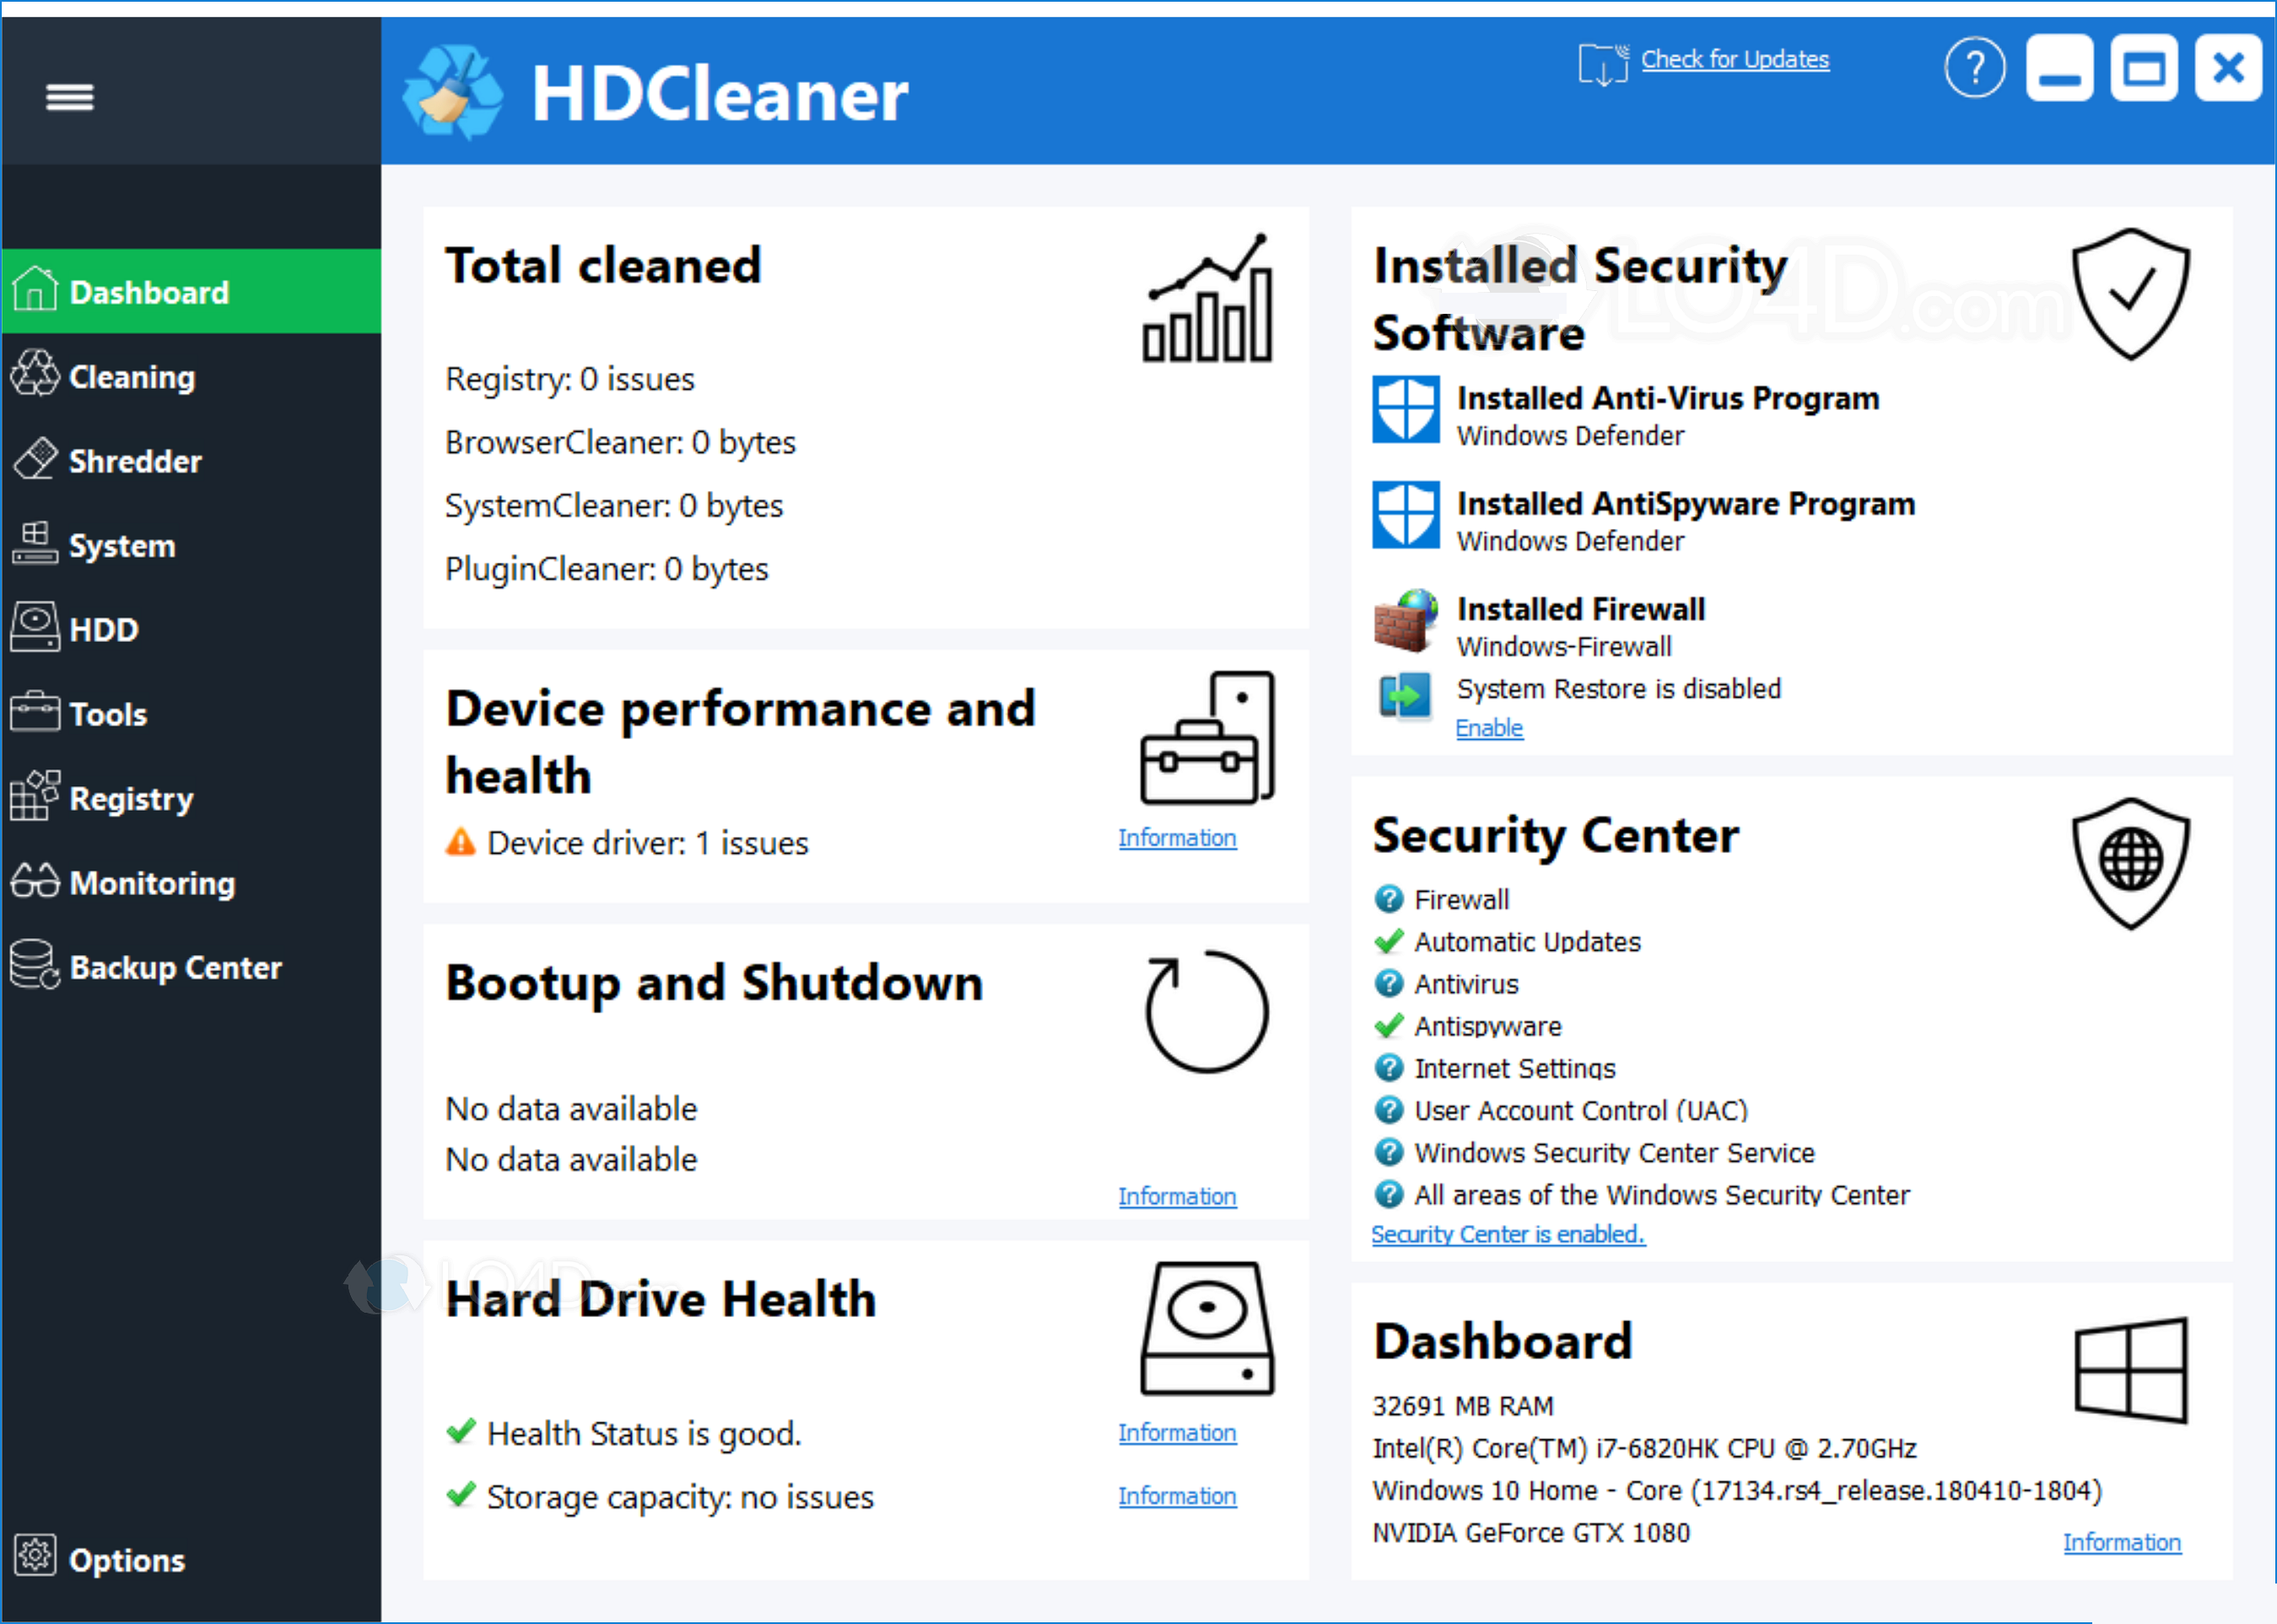 HDCleaner latest version